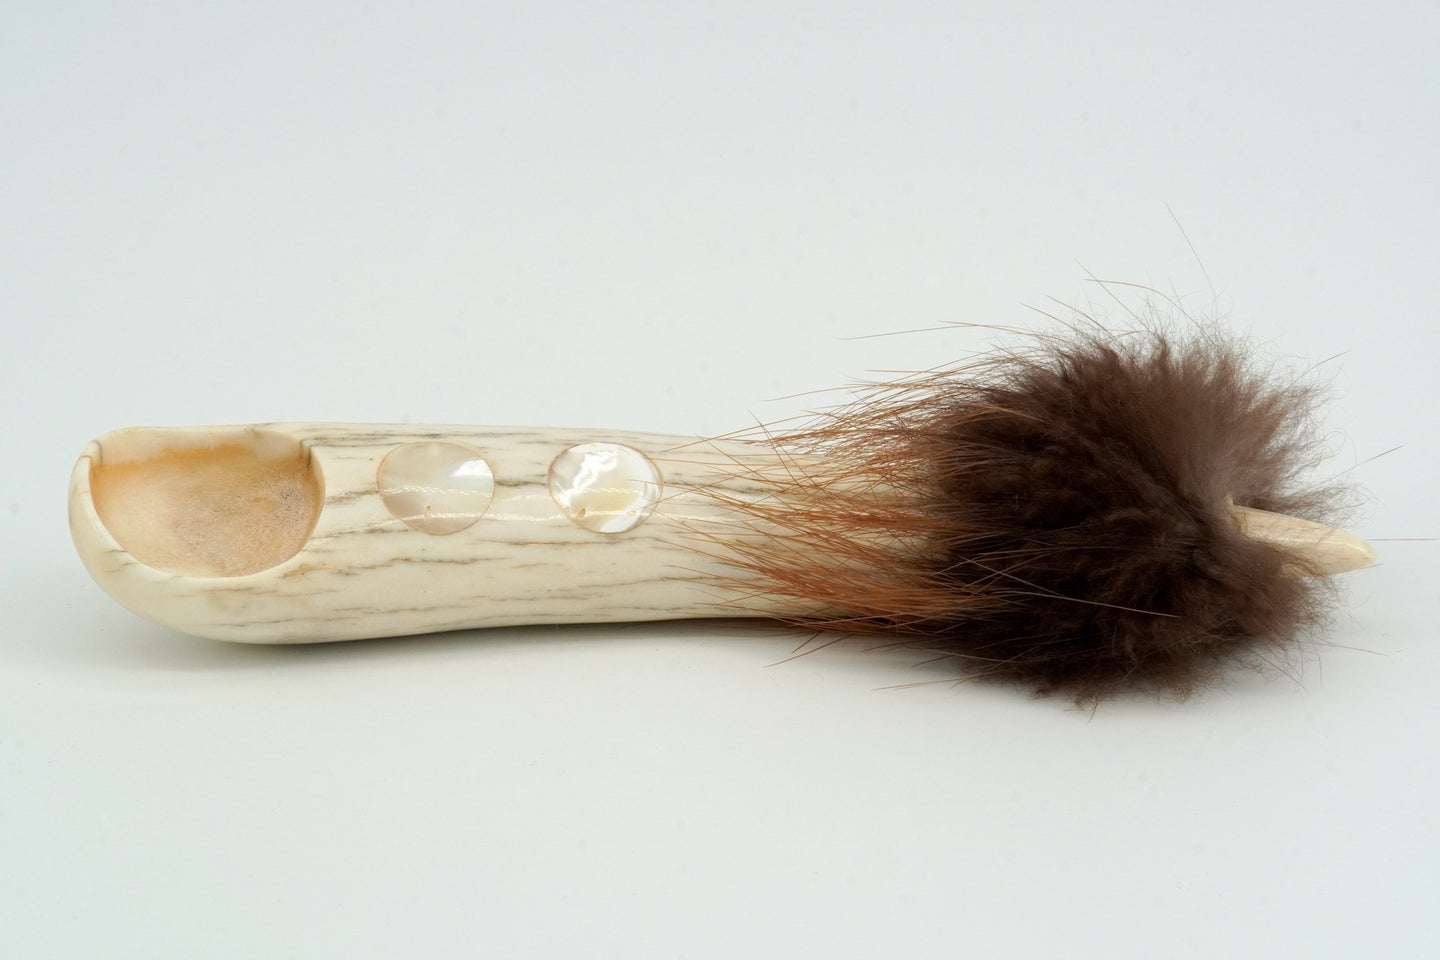 Carved Antler Spoon by Naomi Crey